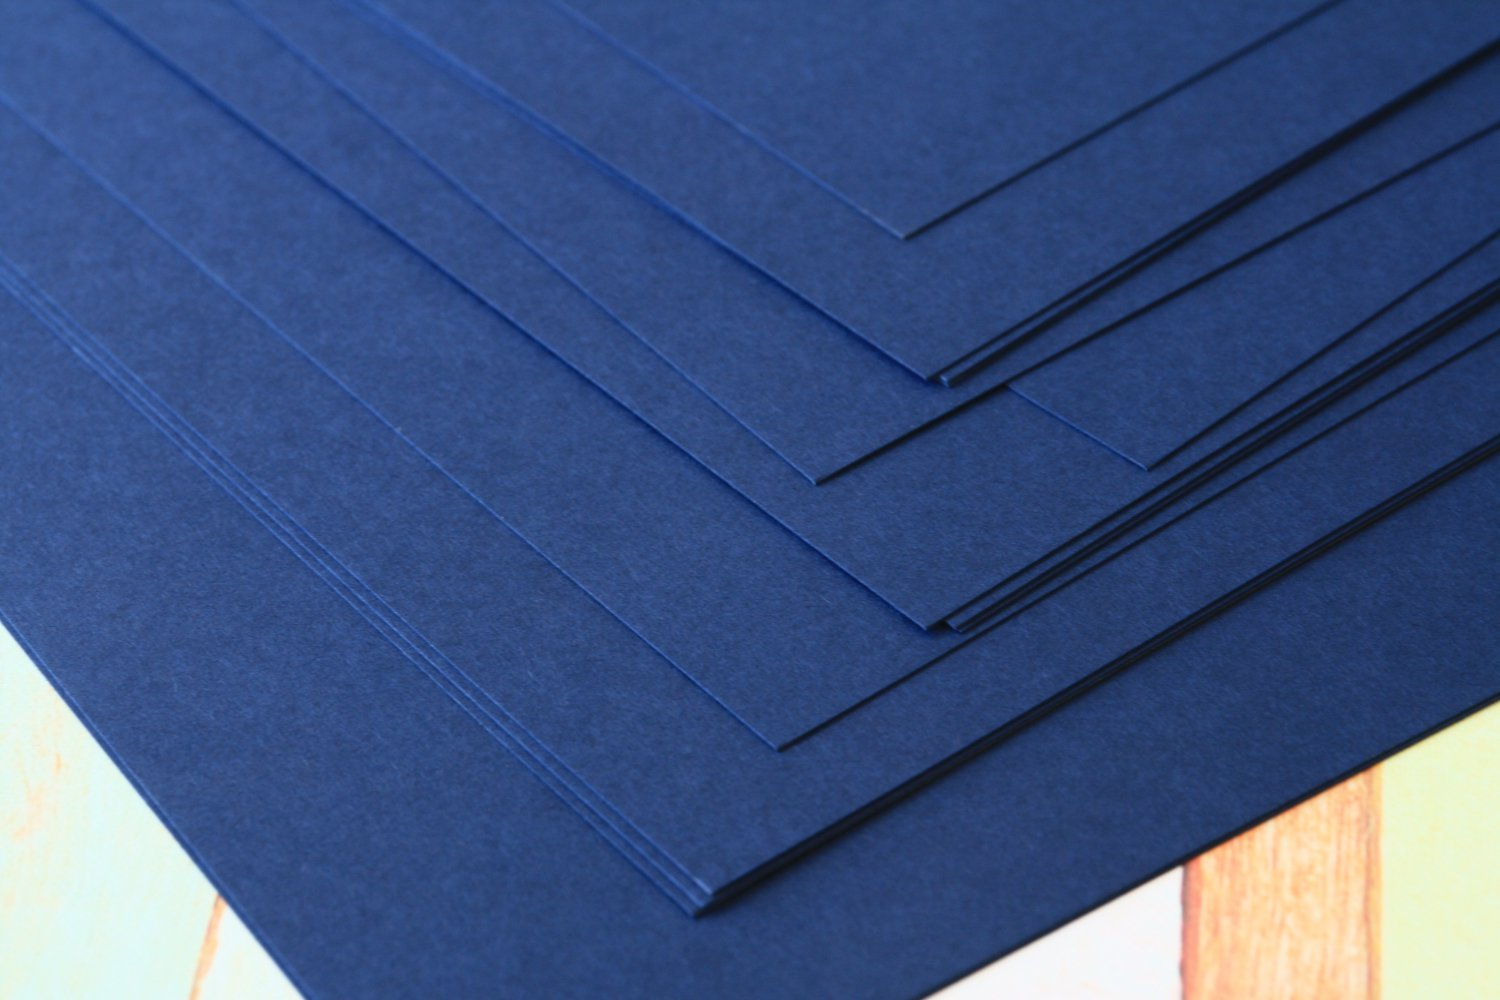 Blueberry Navy cardstock 260gsm 95lbs cover A4 size